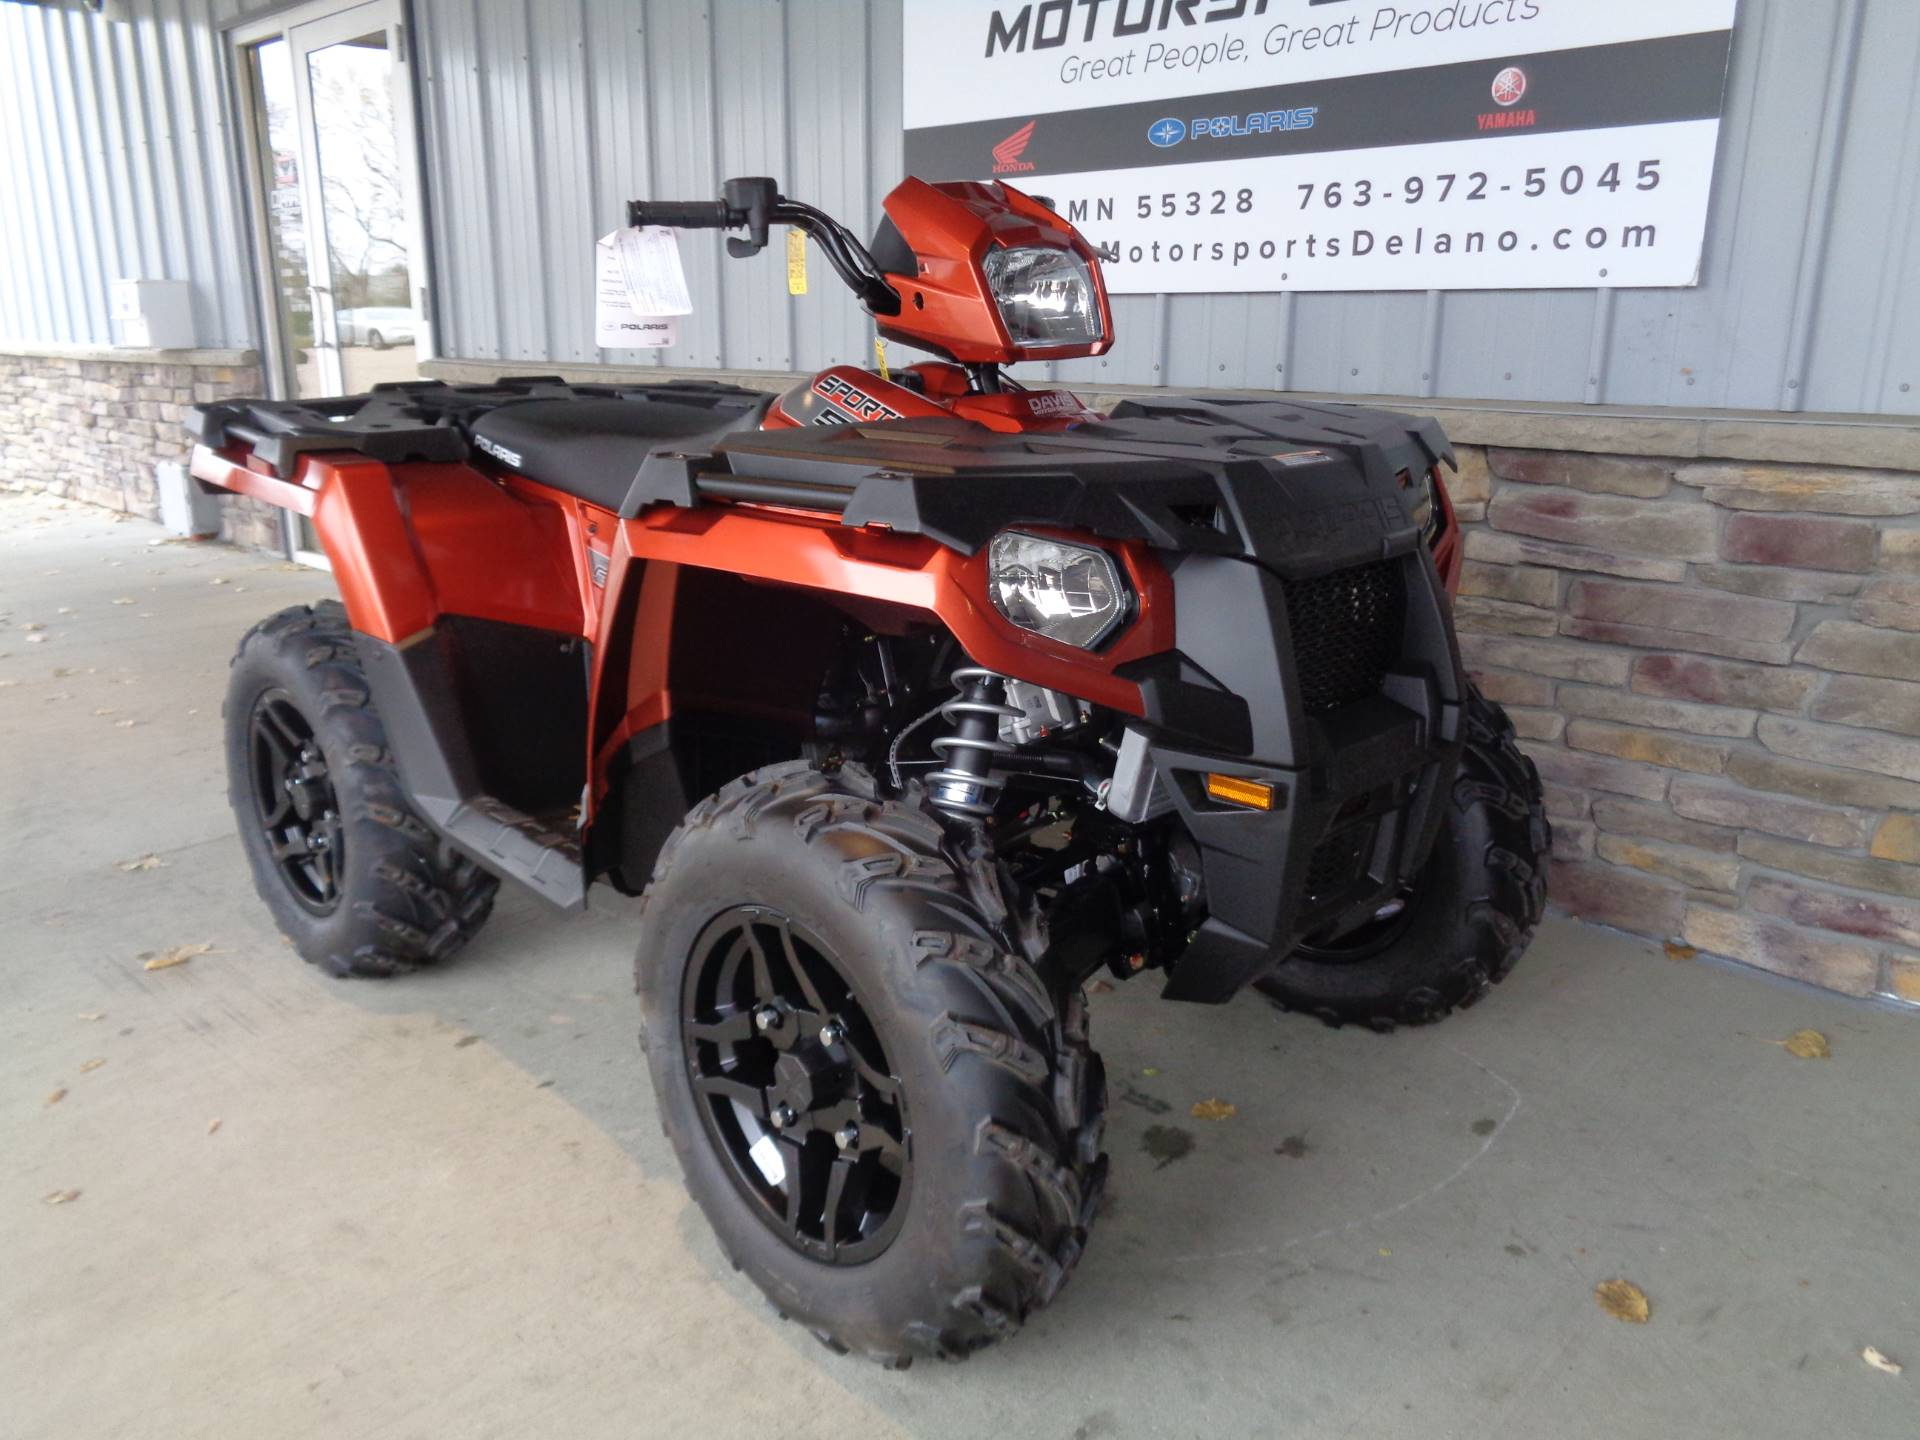 2020 Polaris Sportsman 570 Premium in Delano, Minnesota - Photo 3